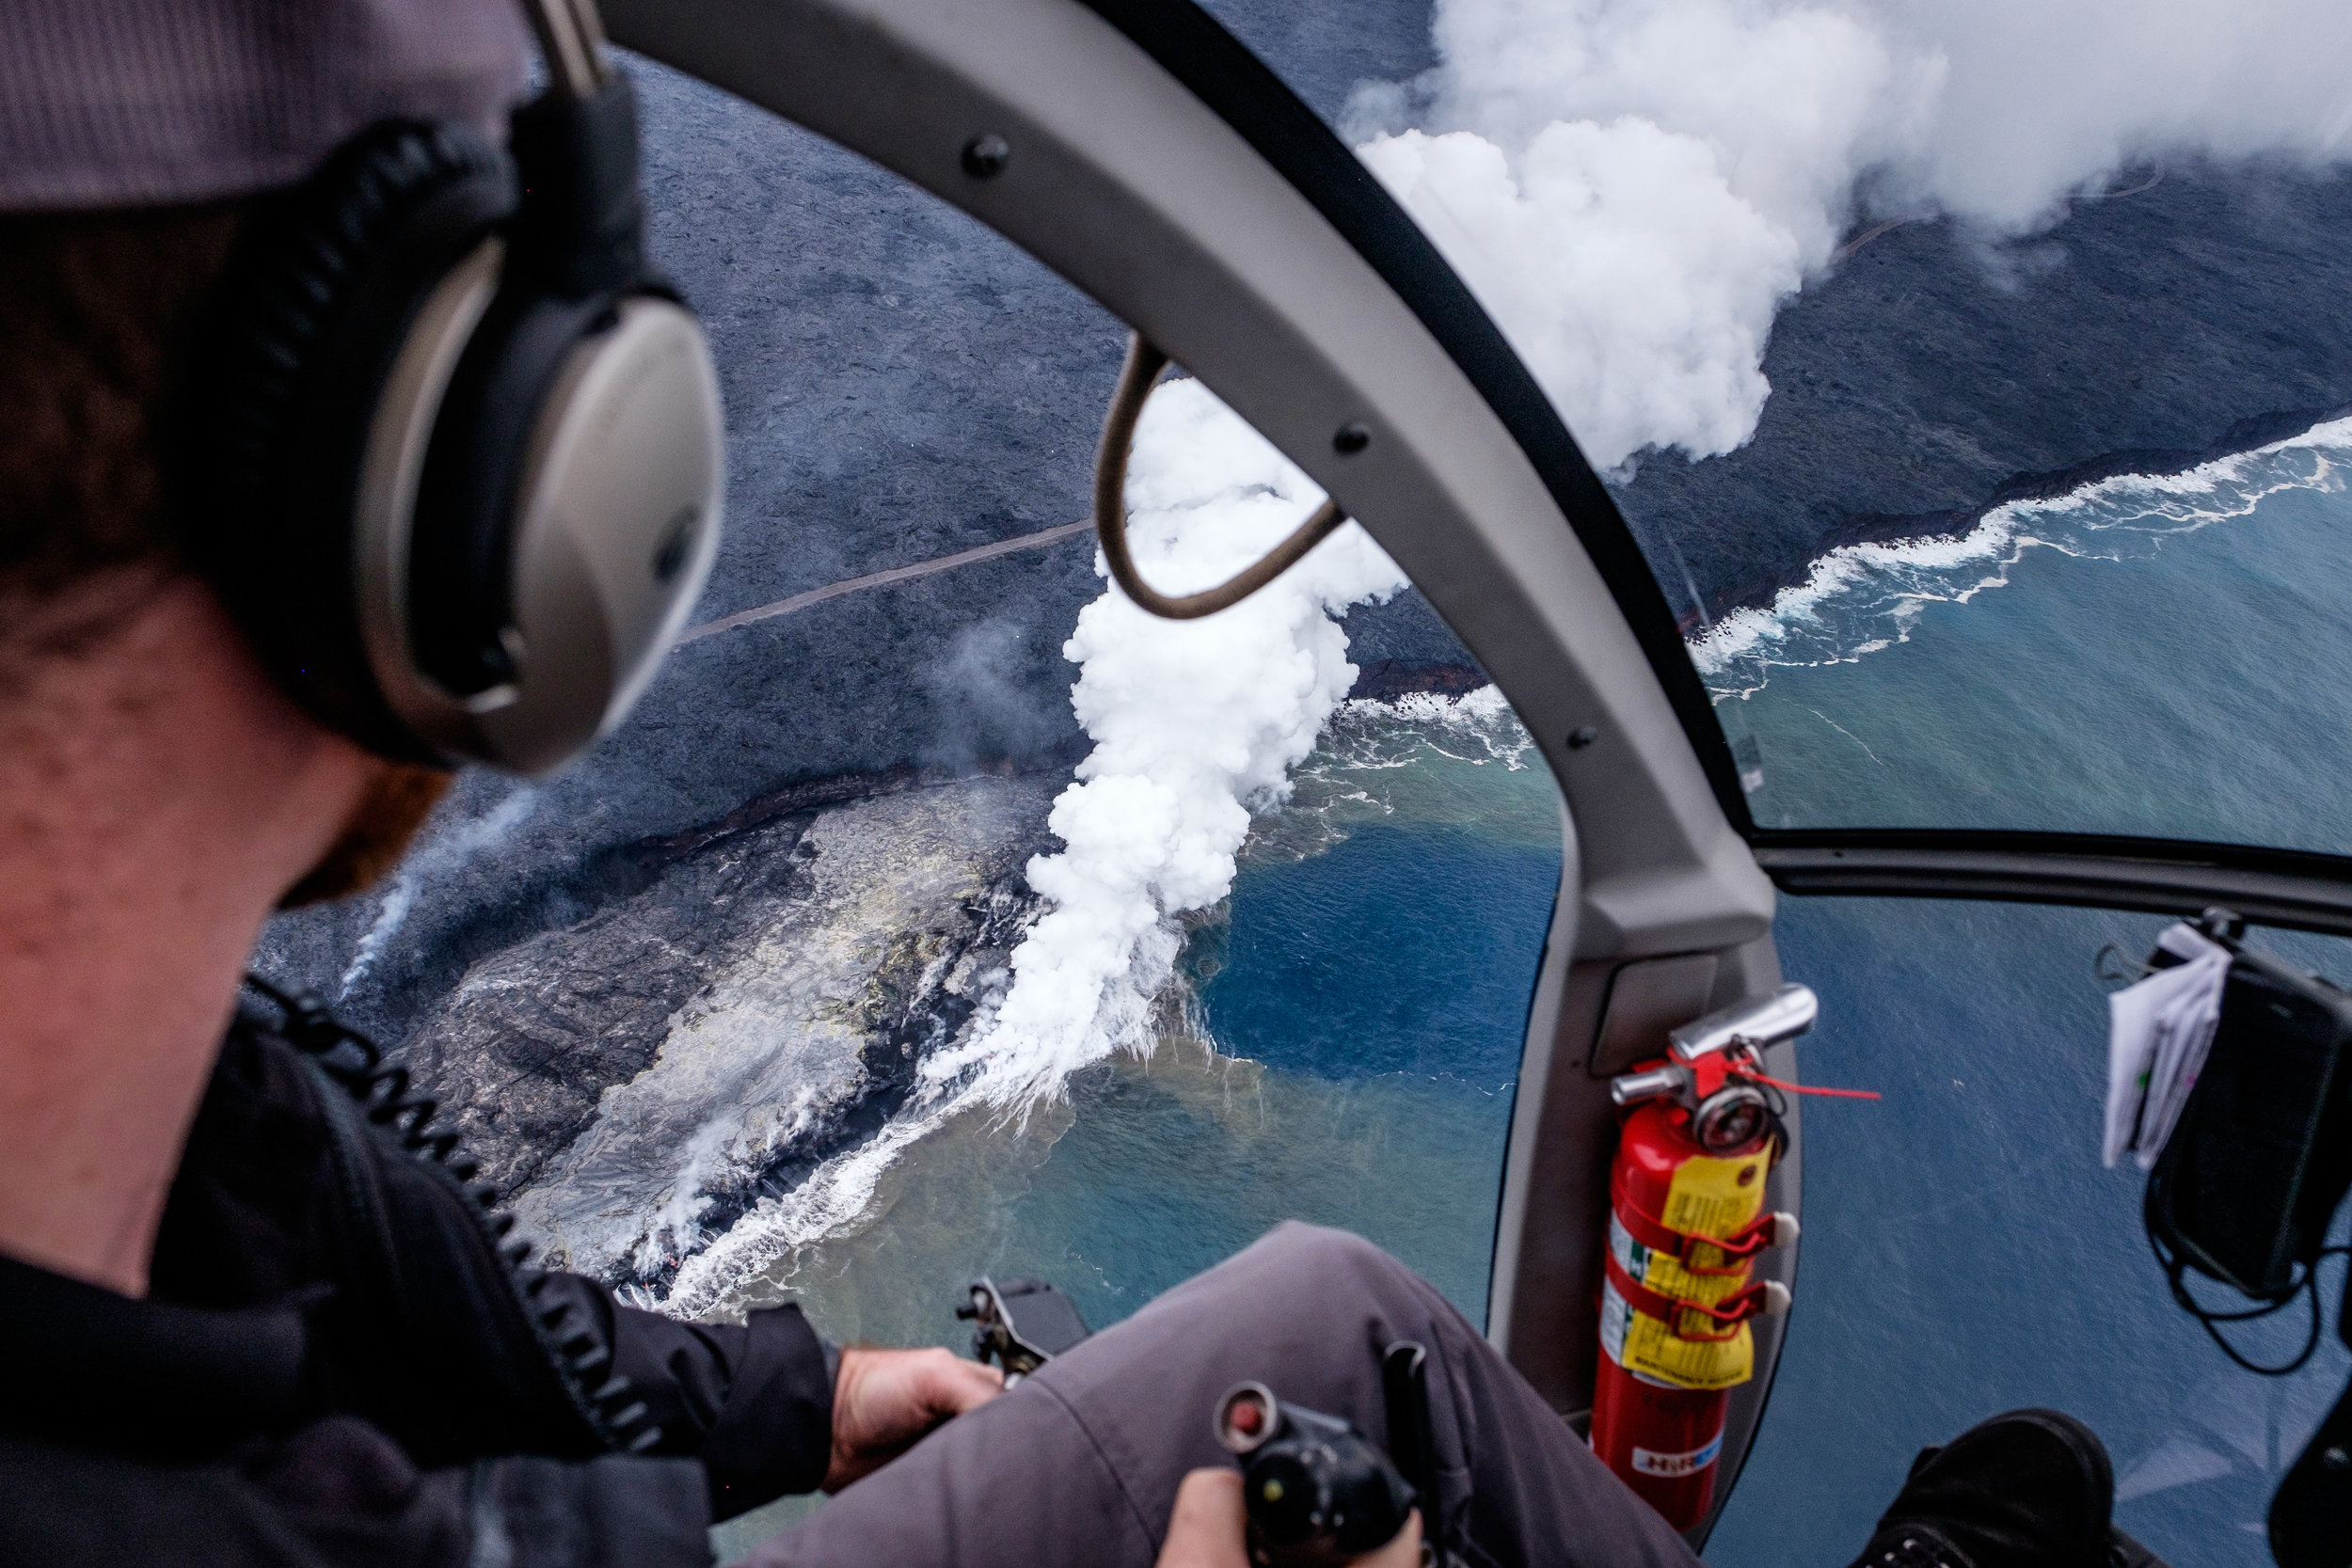 An amazing scene captured from an open-door helicopter while flying above where the Kīlauea volcano meets the largest ocean on Earth—the Pacific!